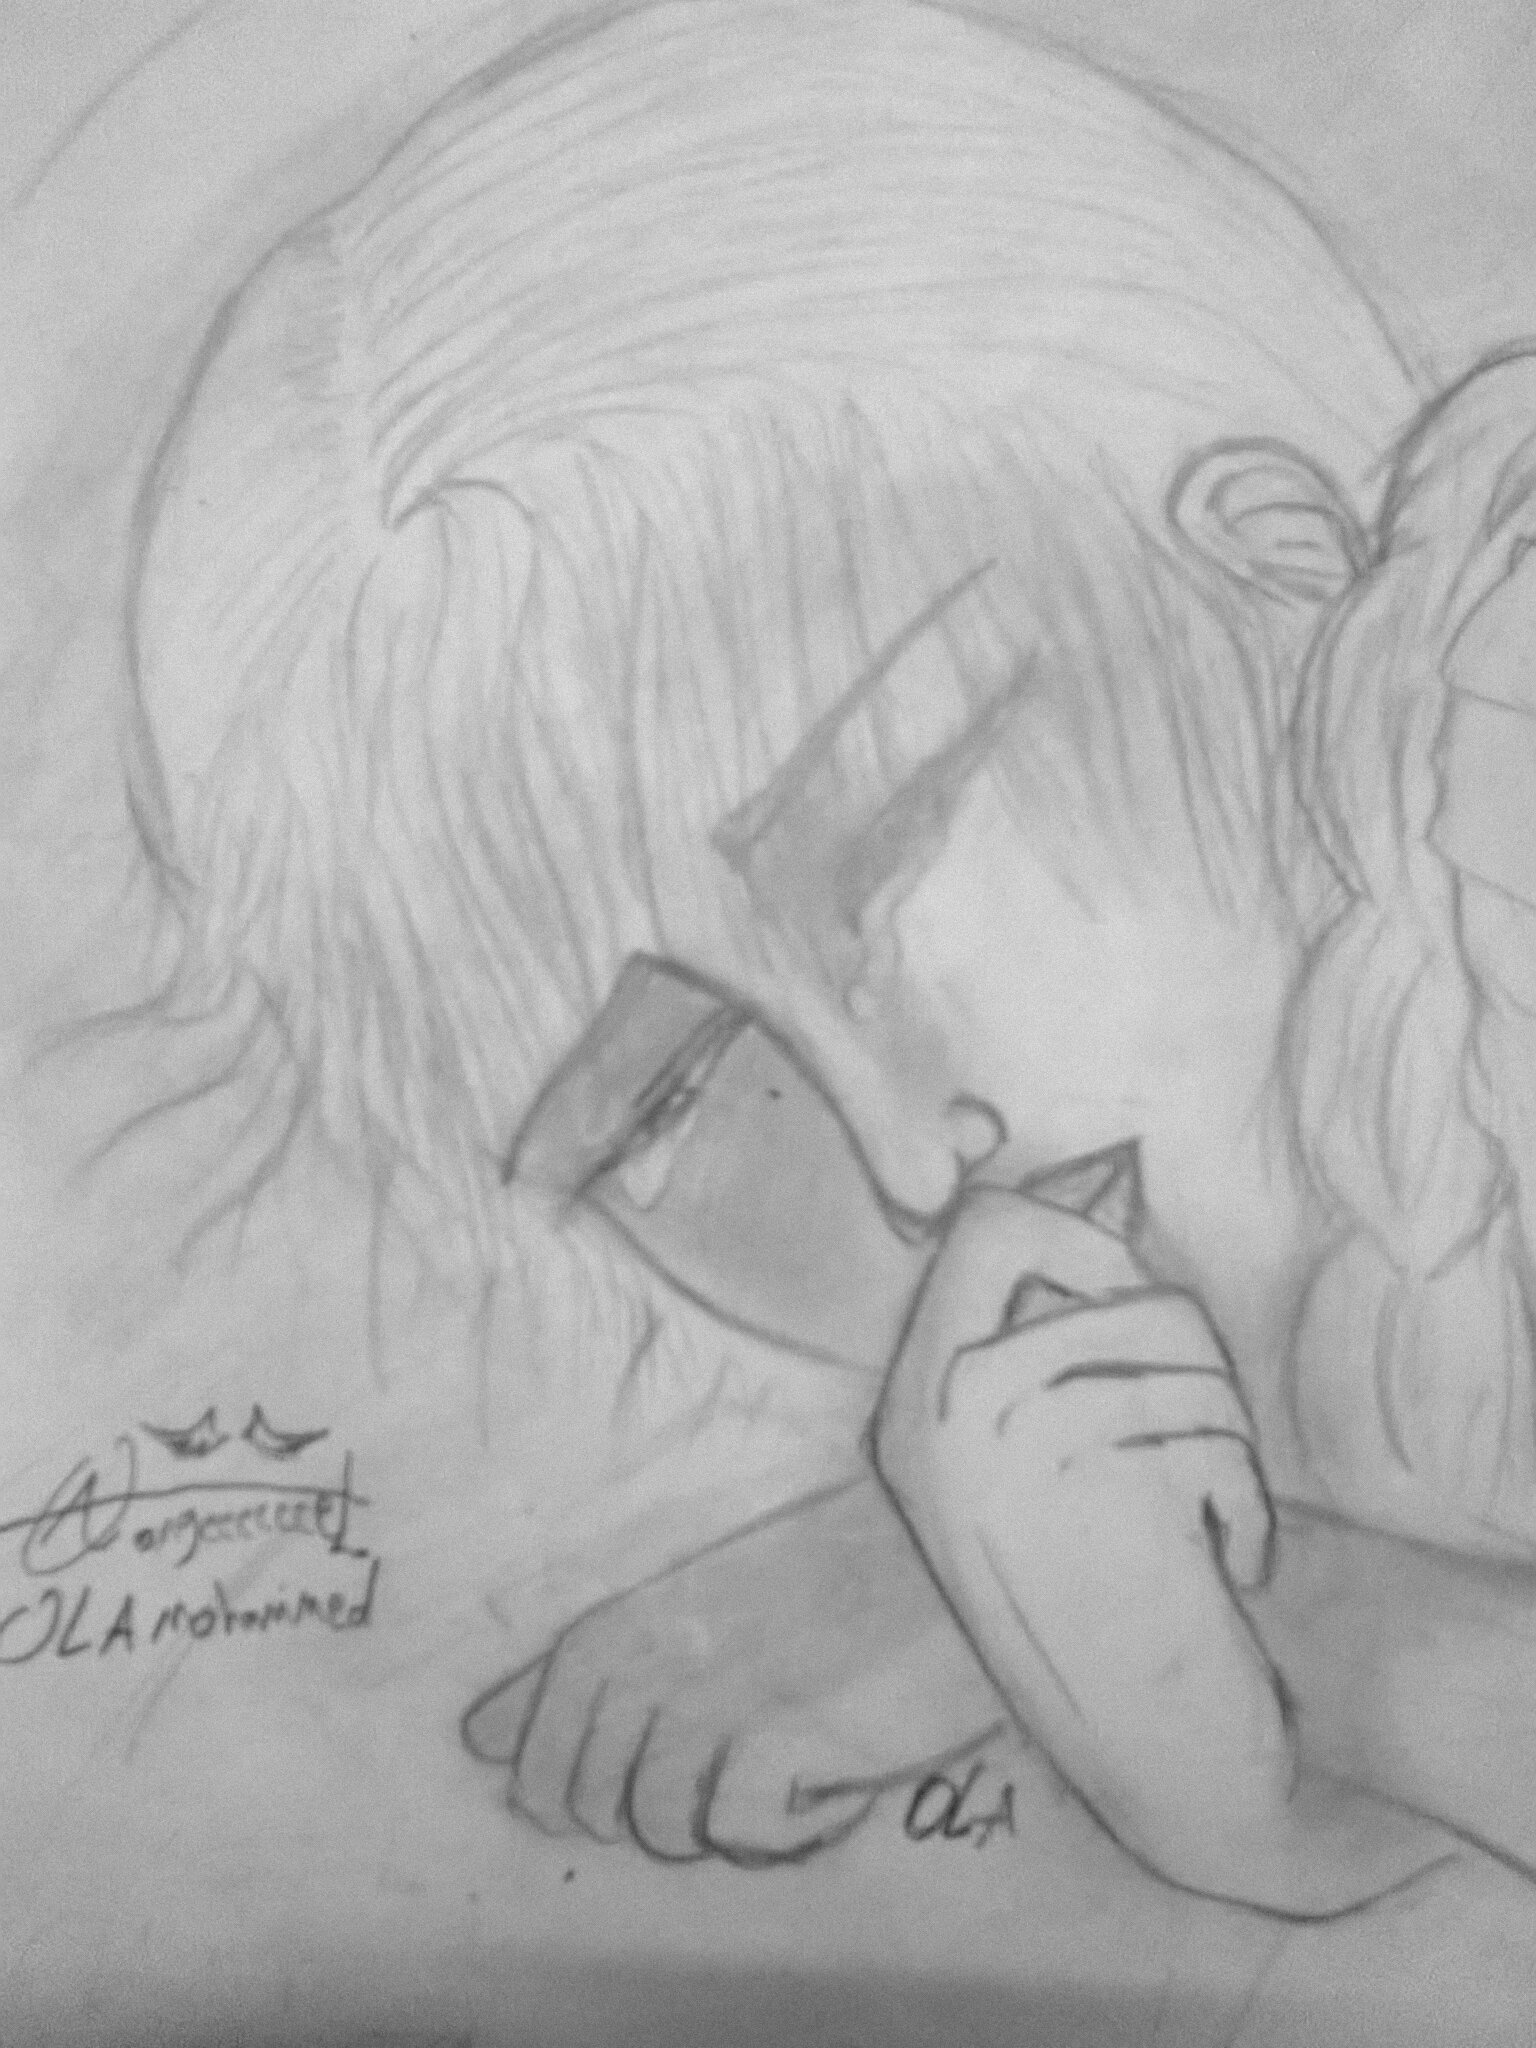 what do anda think about my drawing??? write to me acomment plz ^_^